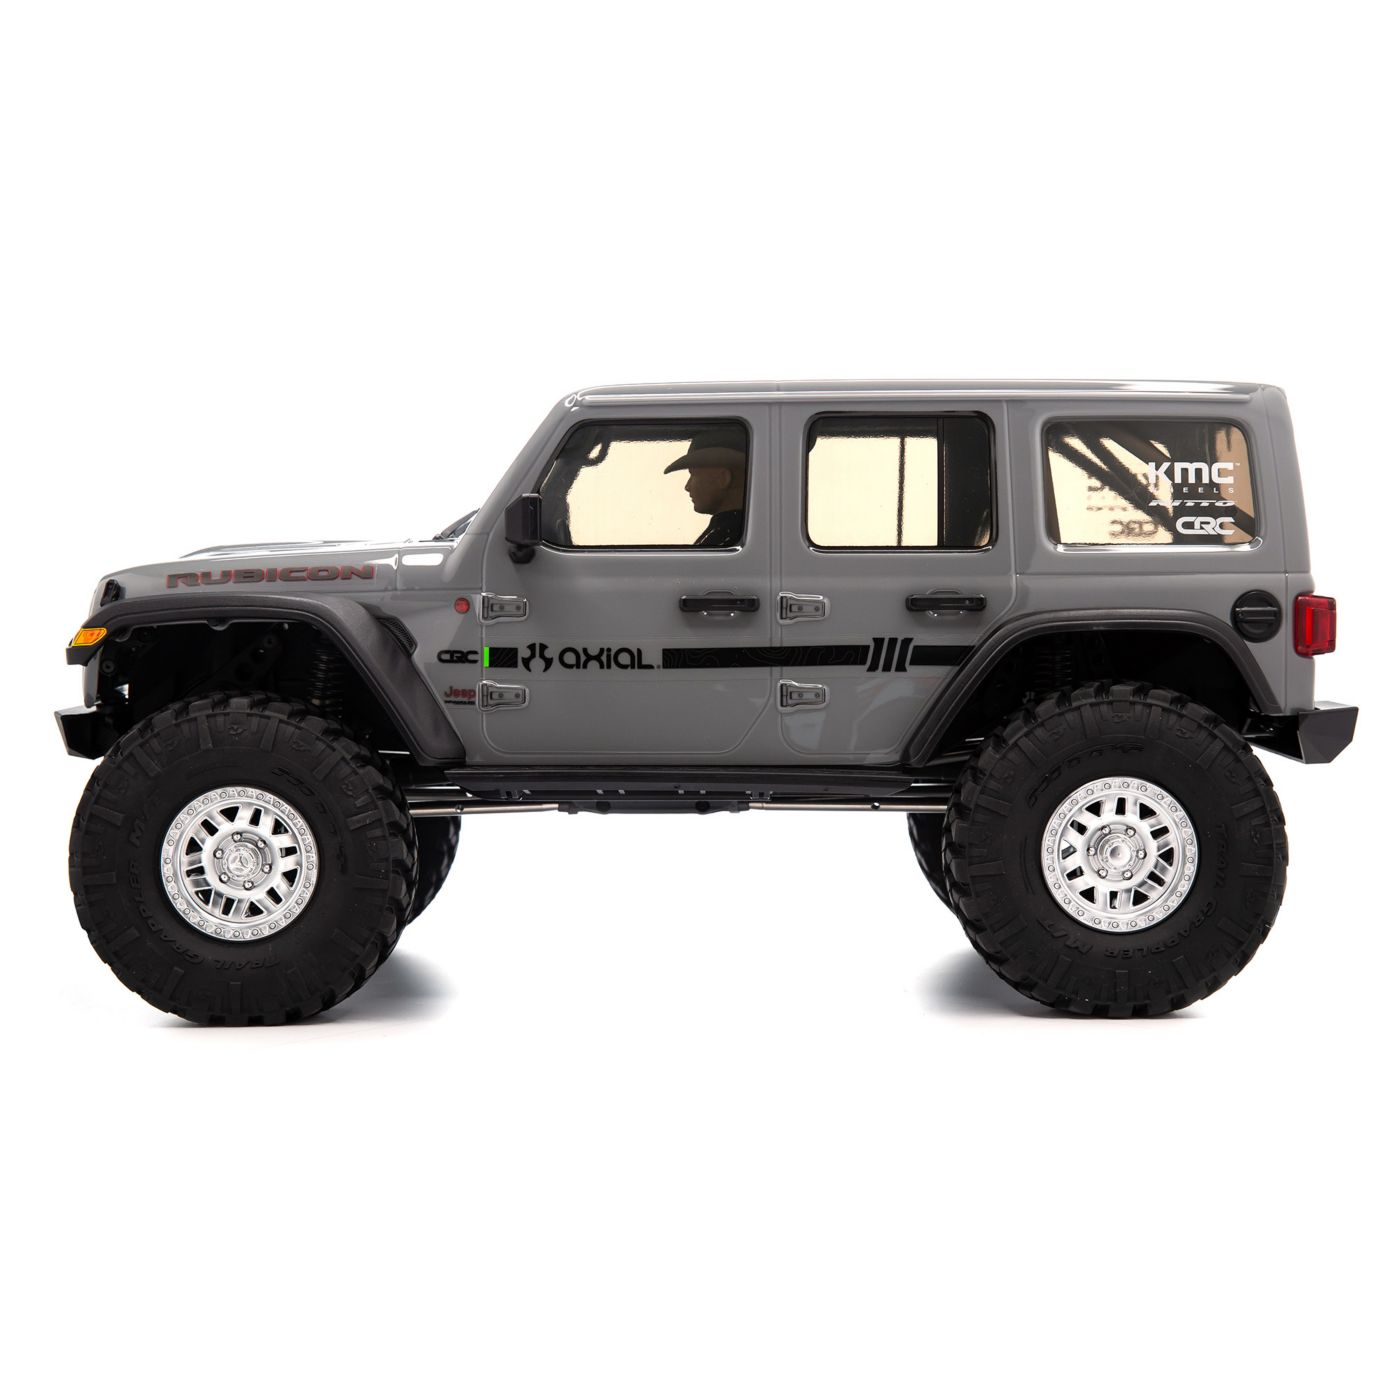 Axial SCX10 III RTR - Gray - Side